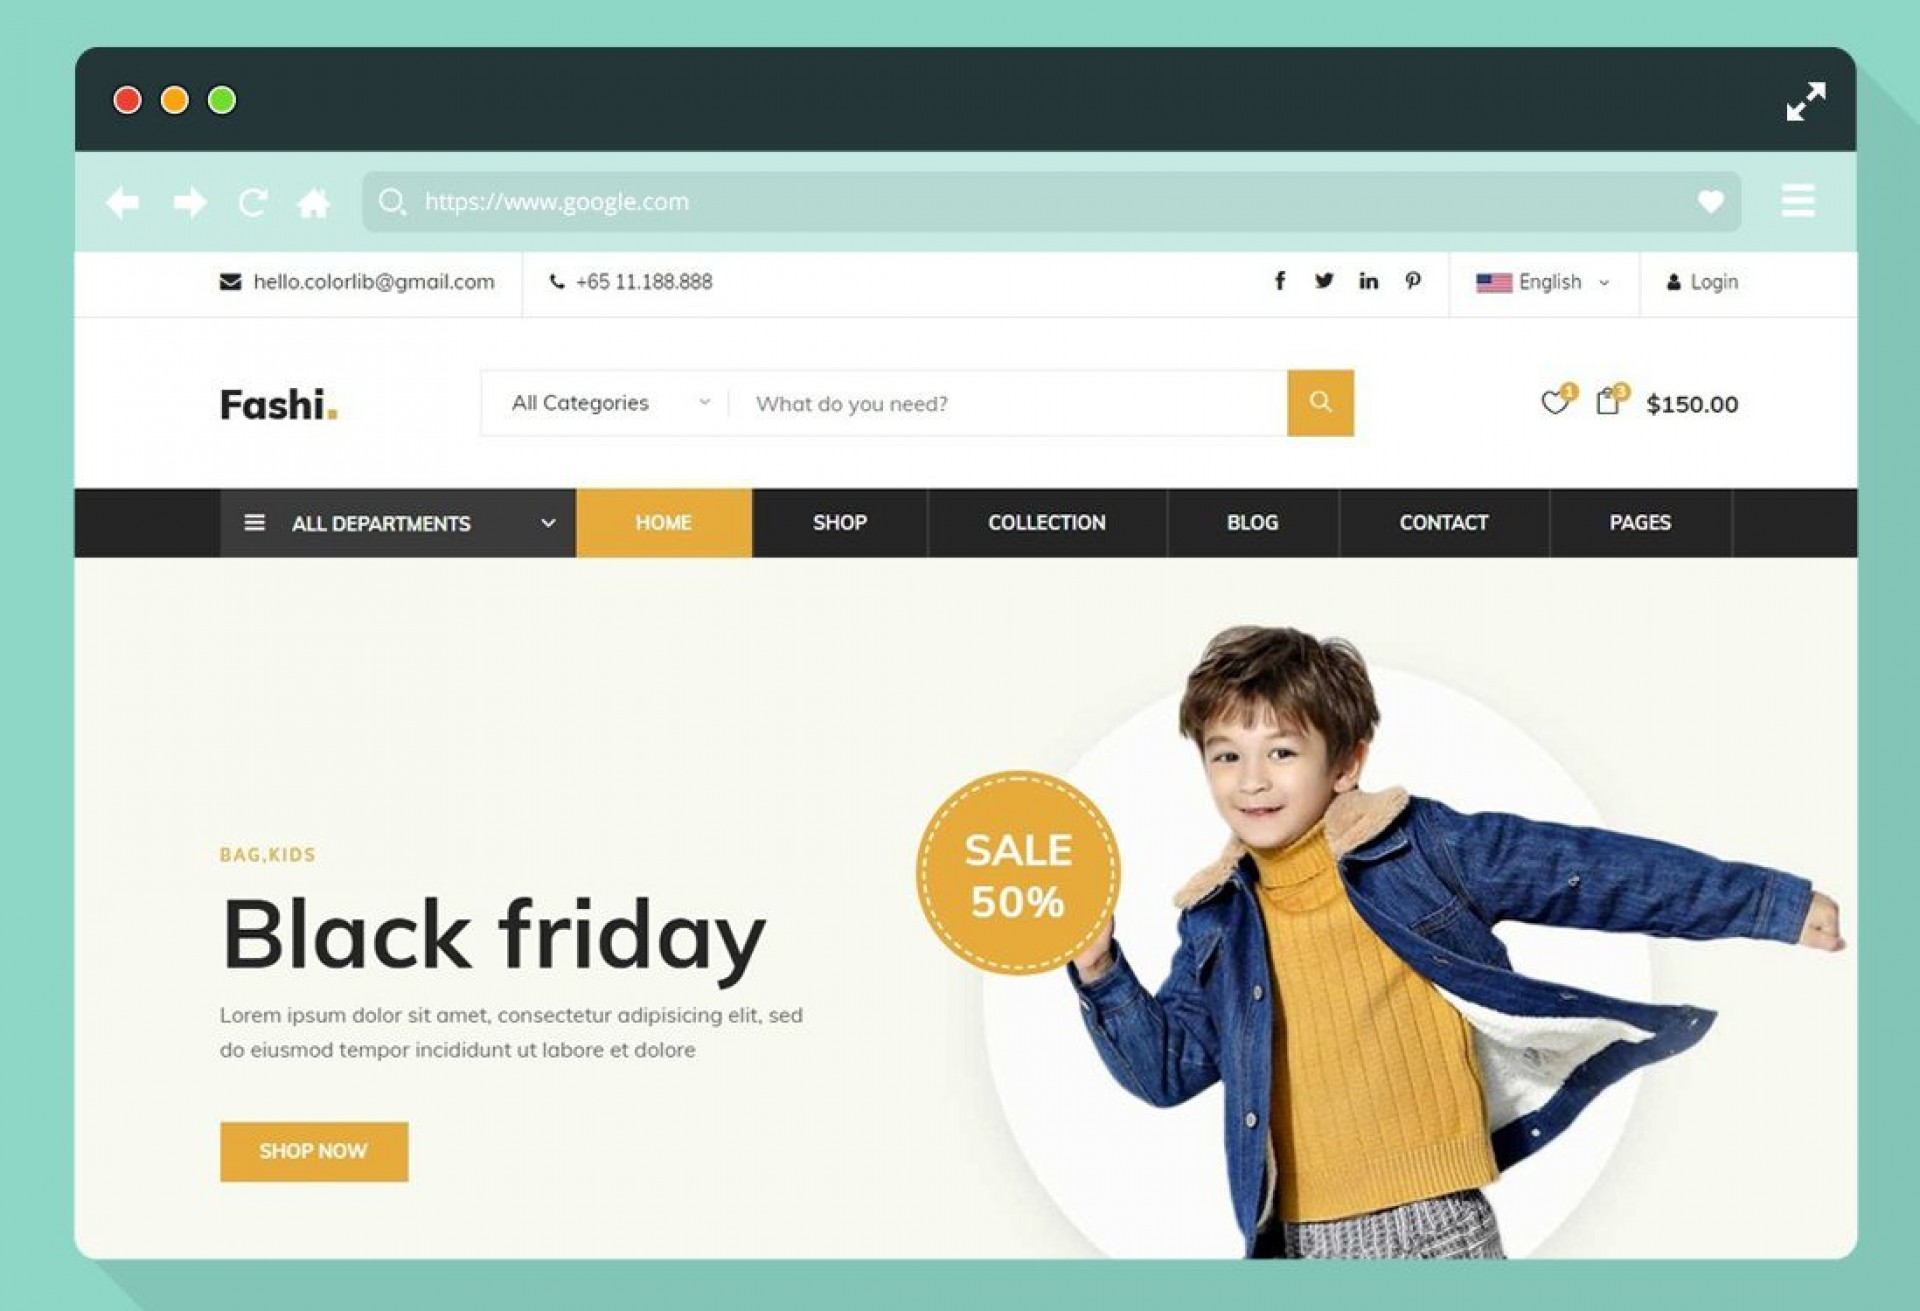 002 Exceptional Free Ecommerce Website Template Sample  Templates Github For Blogger Shopping Cart Wordpres1920